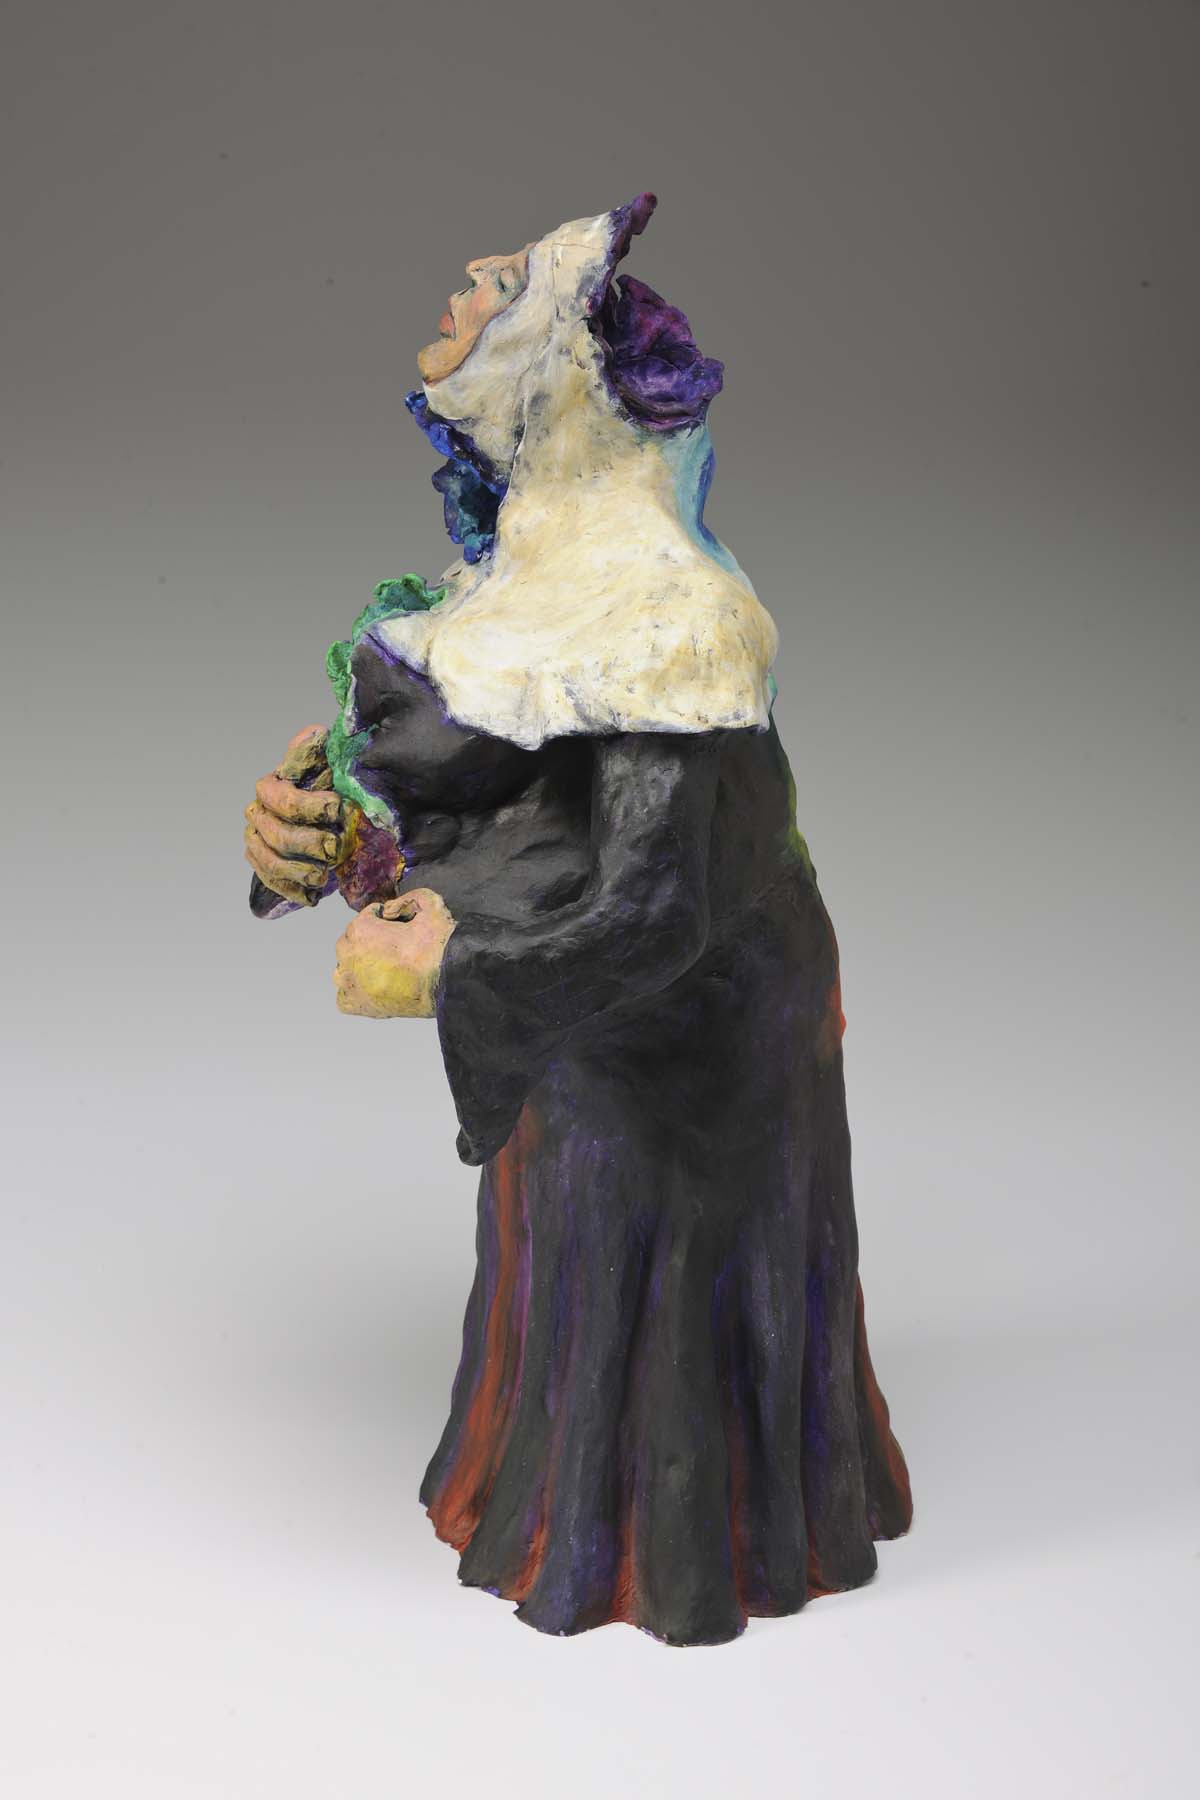 St_Teresa_by_sybil_archilbald_S5_1200-sculpture-charkas-stained-glass.jpg